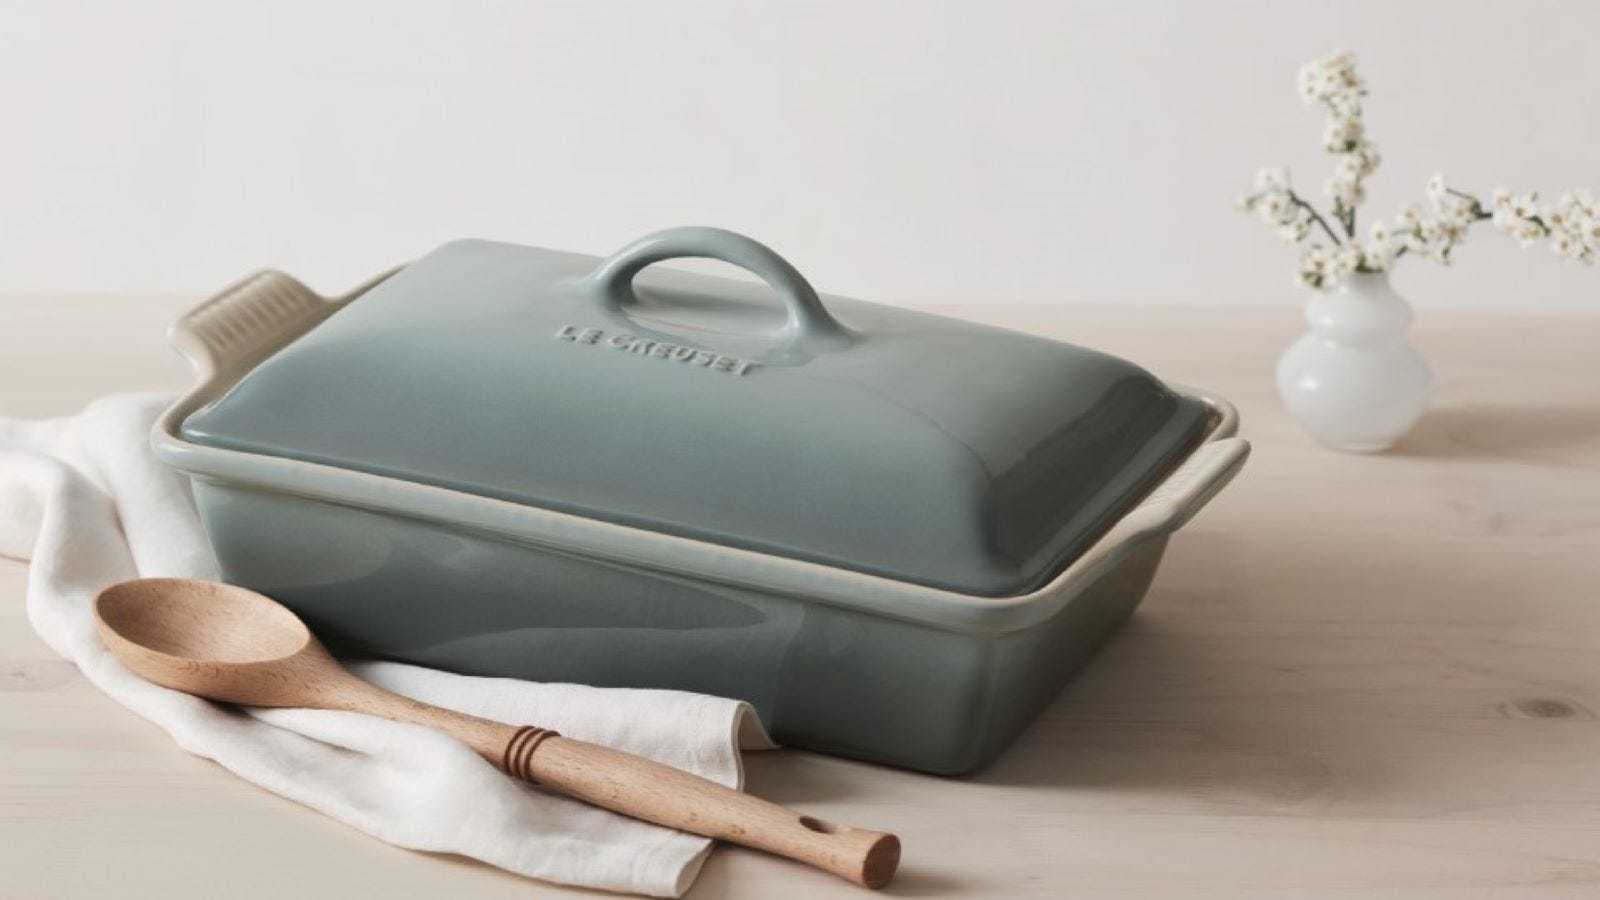 Le Creuset Stoneware Covered Rectangular Casserole Dish and a wooden spoon on a table.